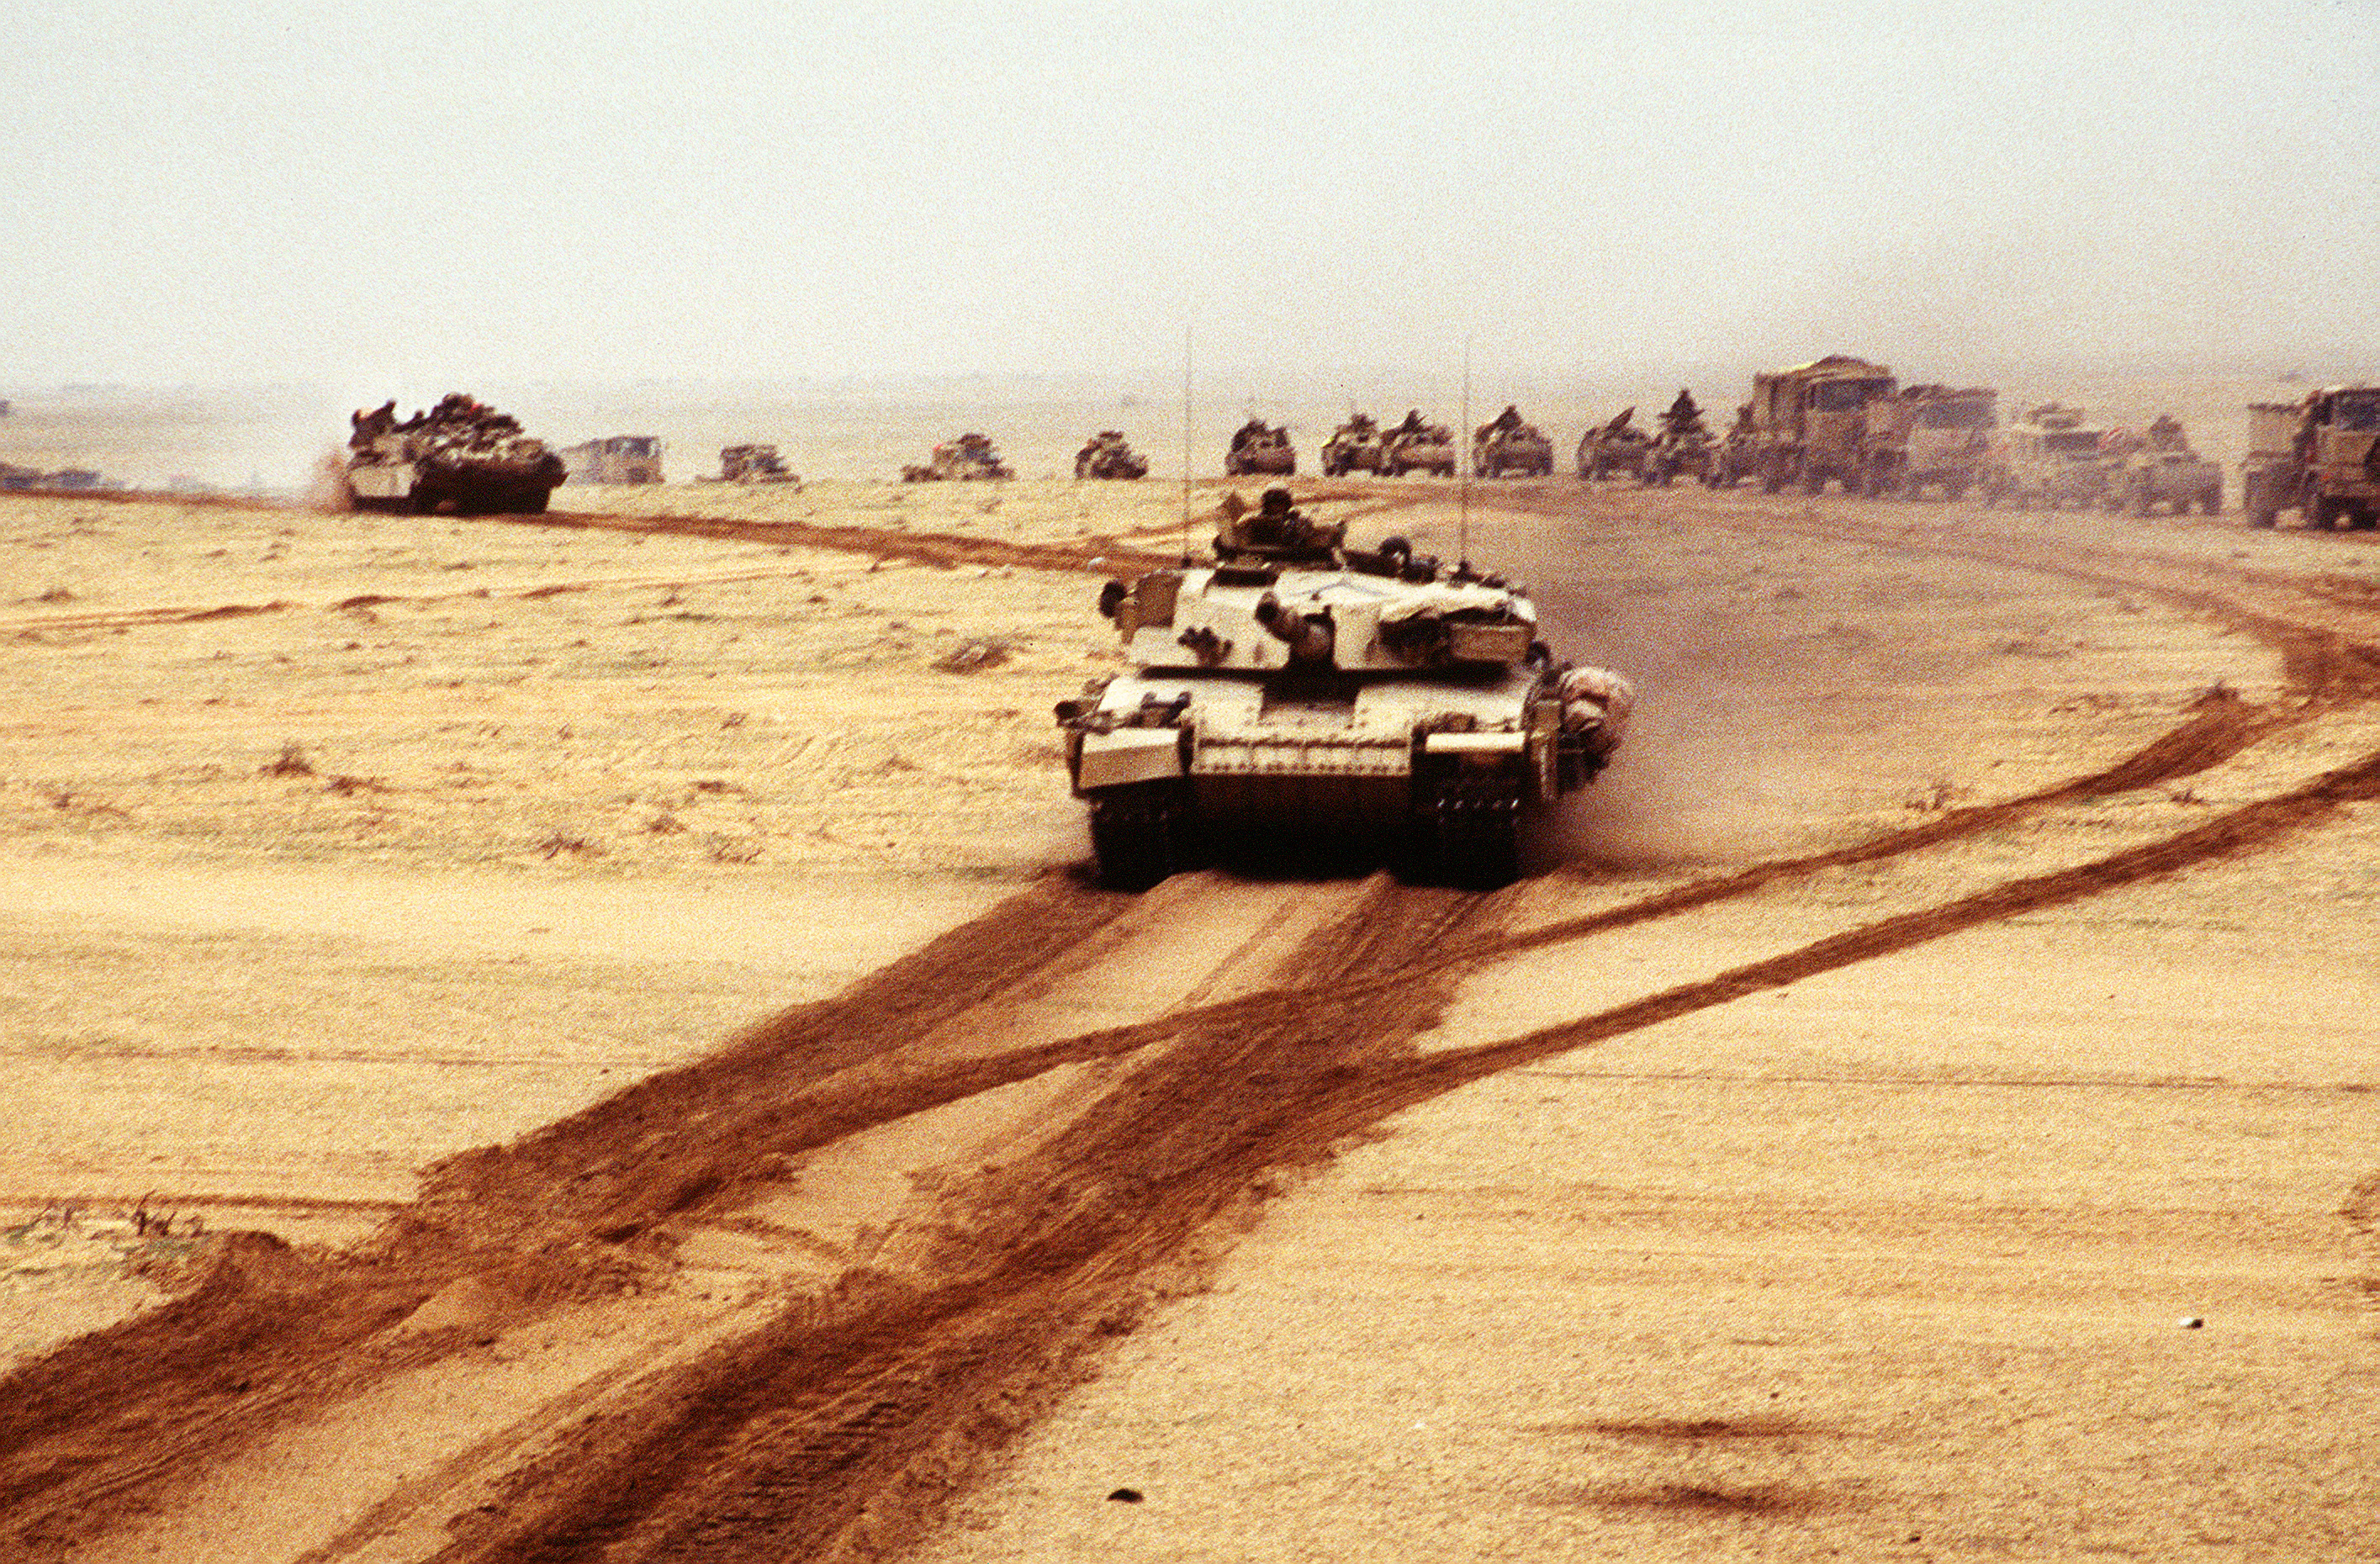 media analysis of gulf war Find out more about the history of persian gulf war, including videos, interesting articles, pictures, historical features and more get all the facts on historycom.